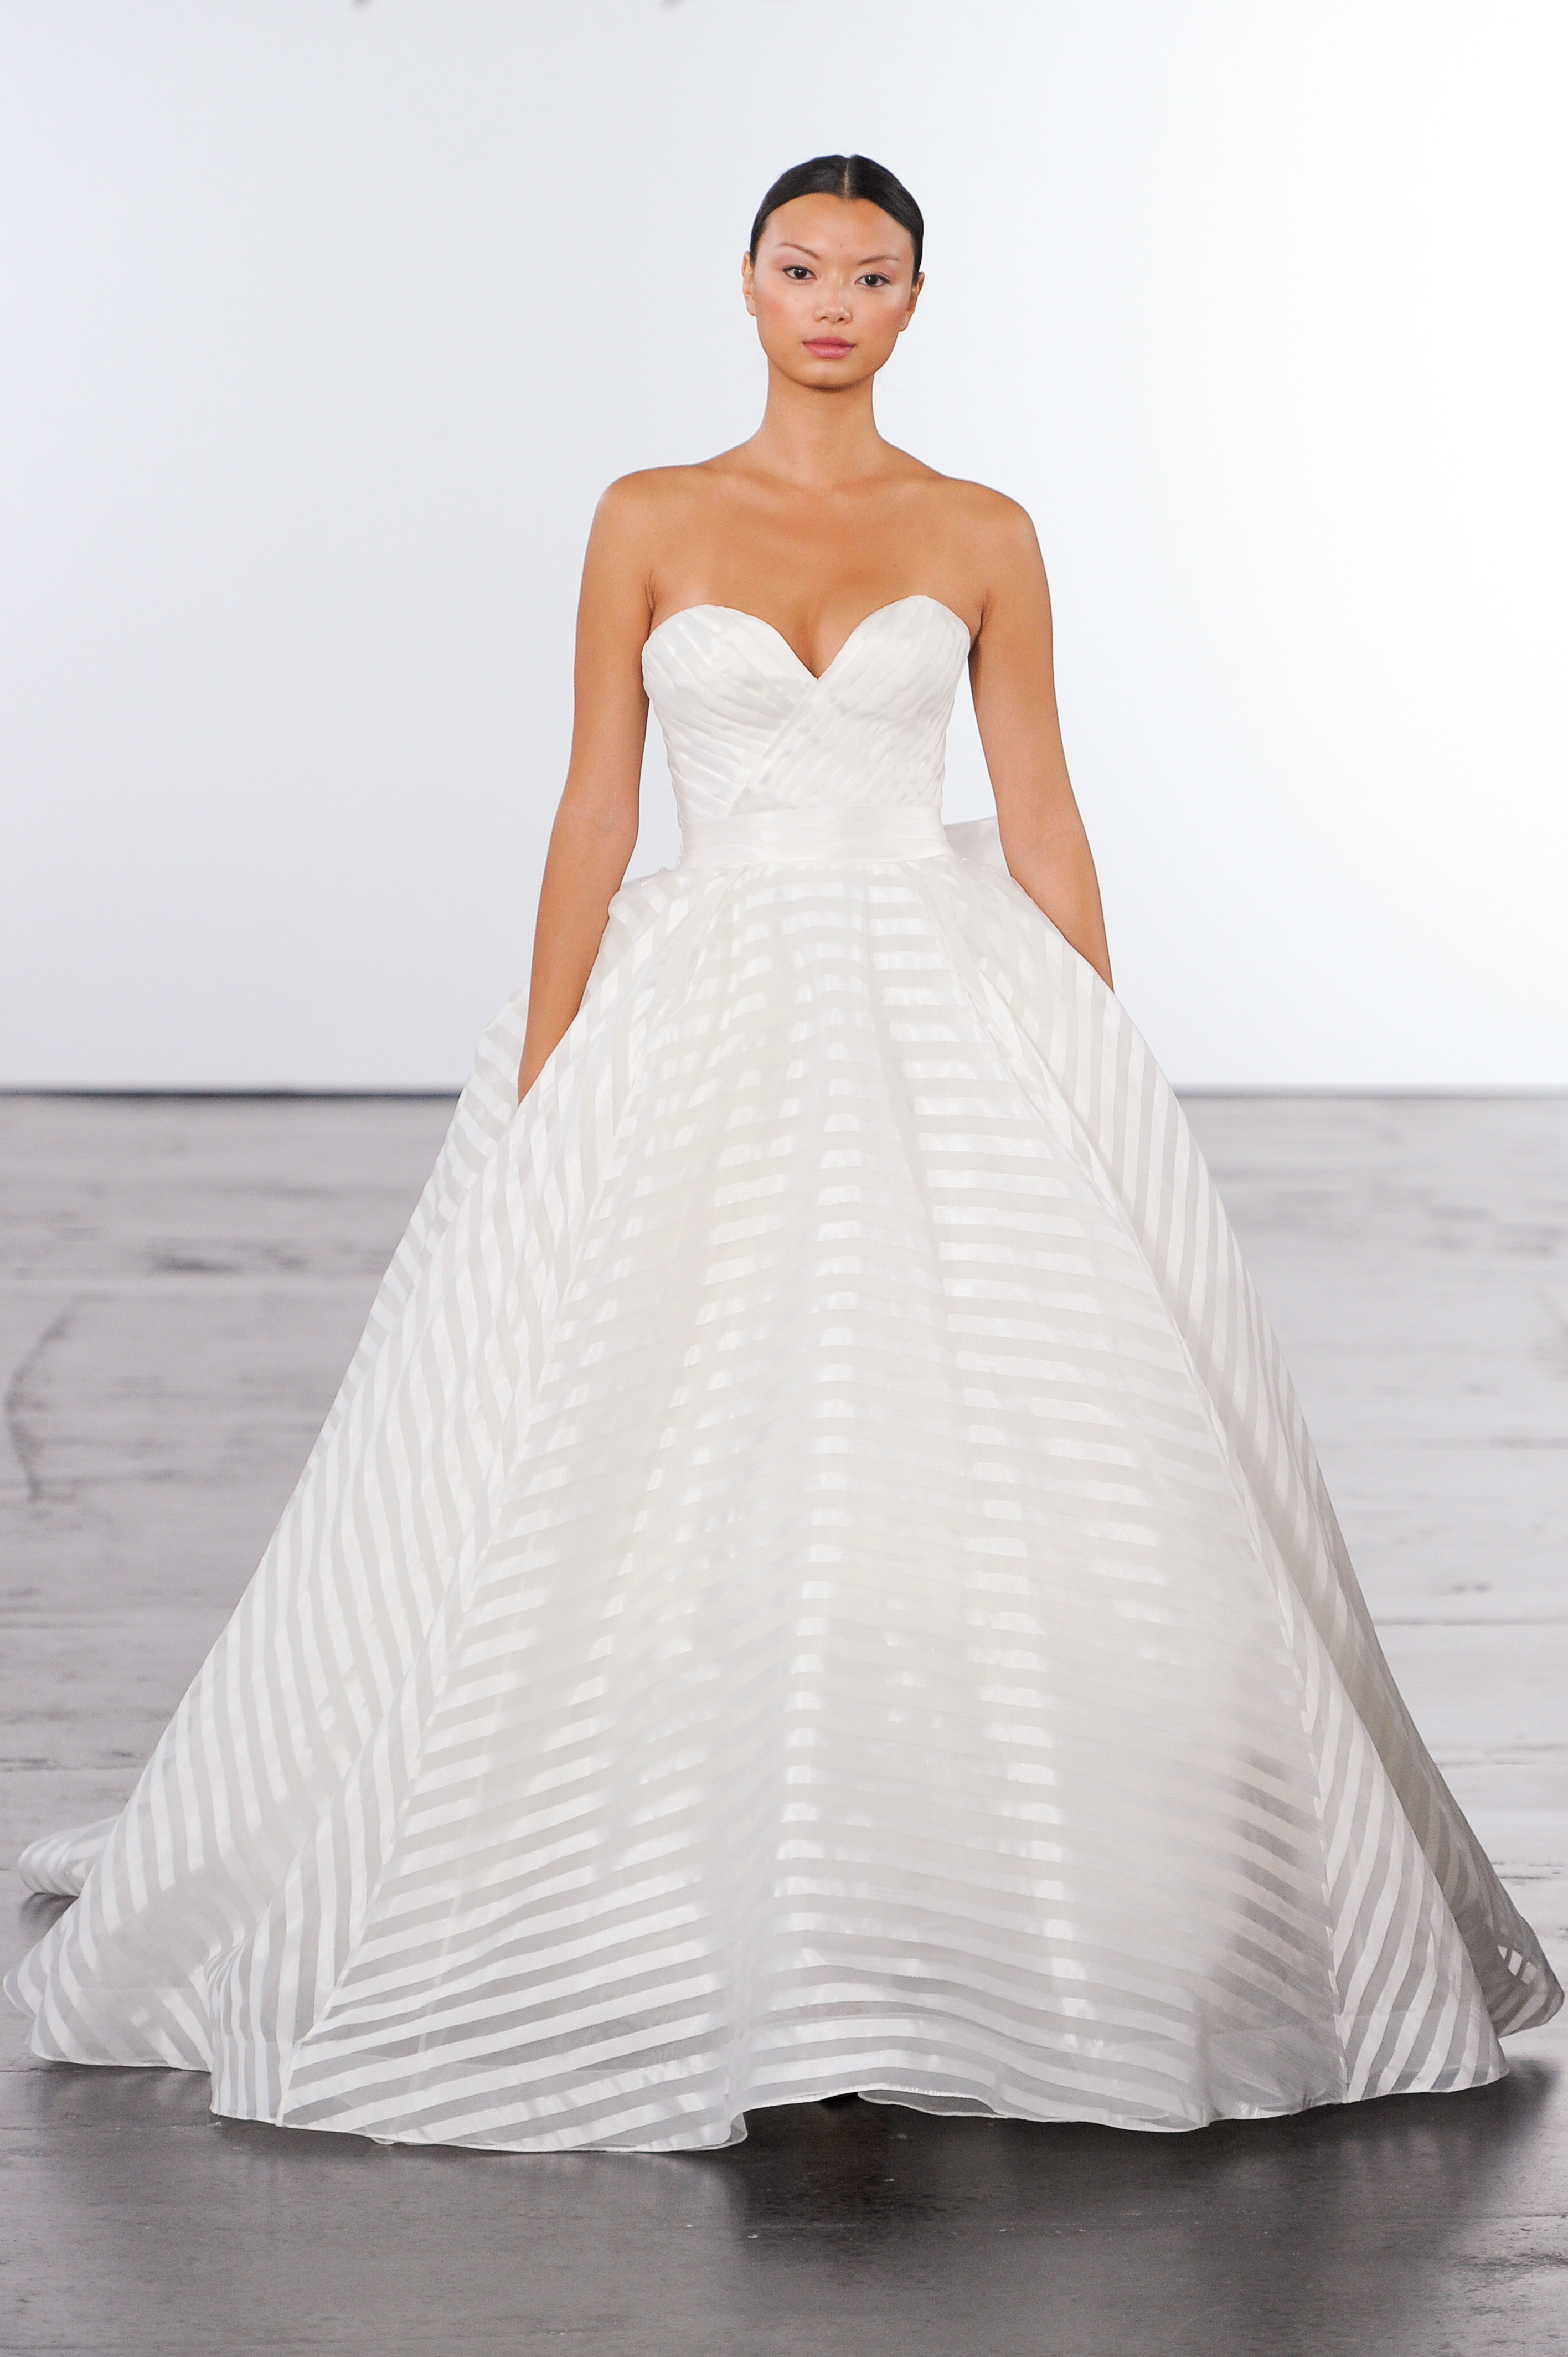 dennis basso sweetheart neckline wedding dress with stripes fall 2018